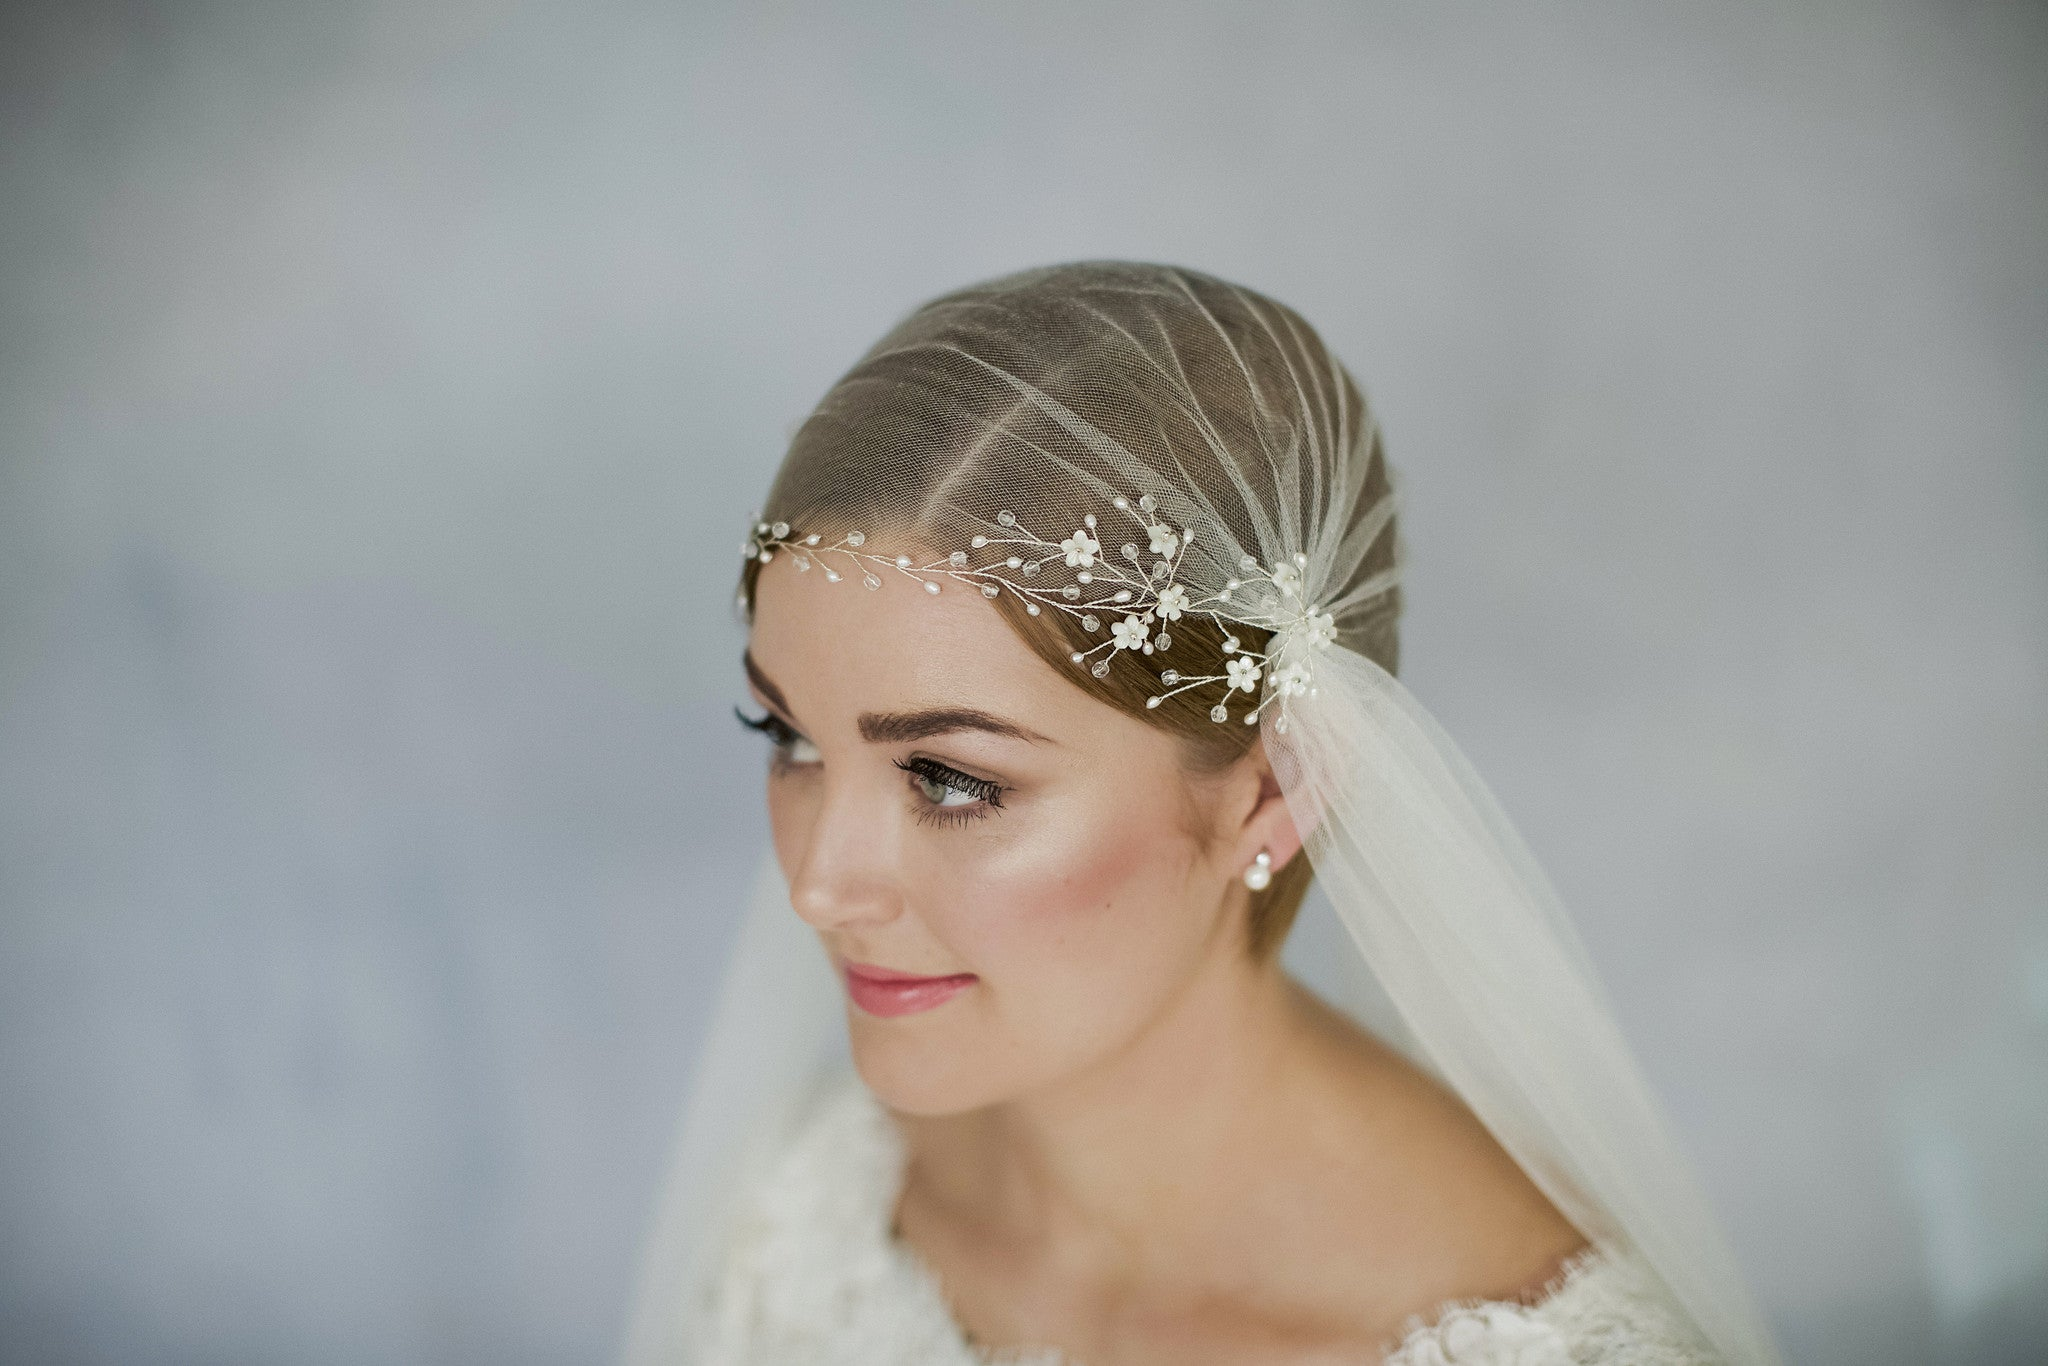 Silky tulle luxurious soft vintage style Juliet cap wedding veil